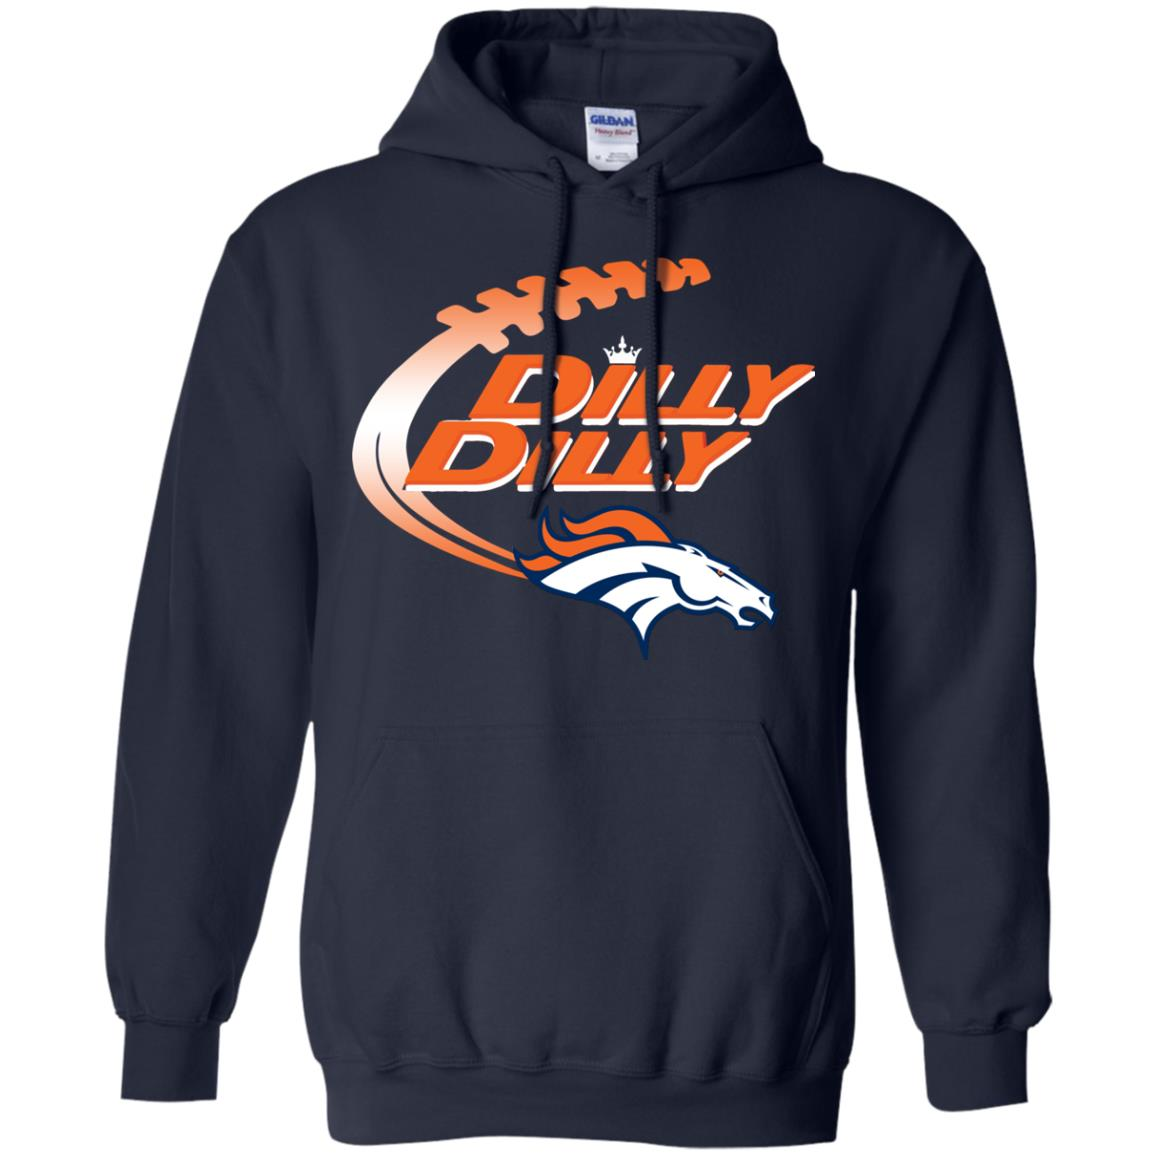 image 1856 - Dilly Dilly Denver Broncos Shirt, Hoodie, Sweater